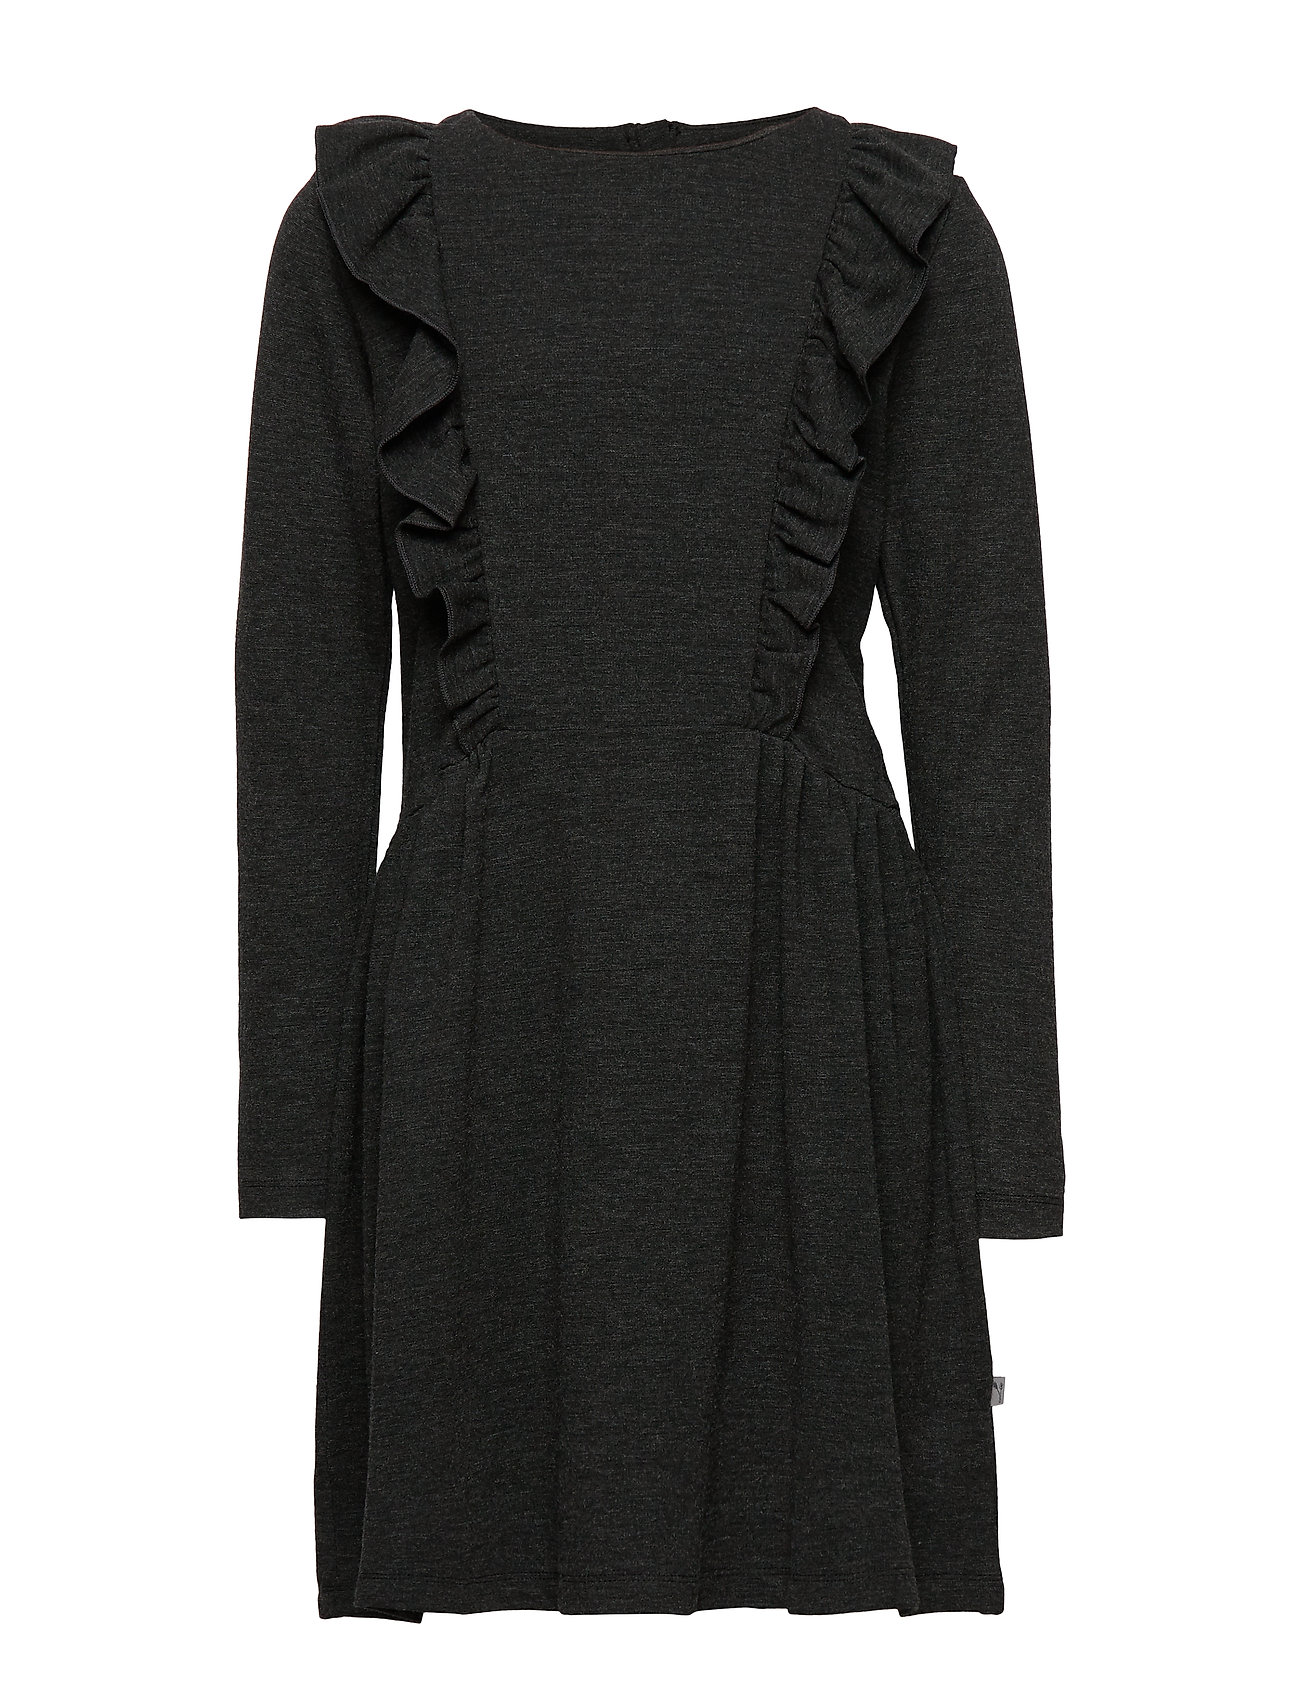 Wheat Dress Majvi - CHARCOAL MELANGE